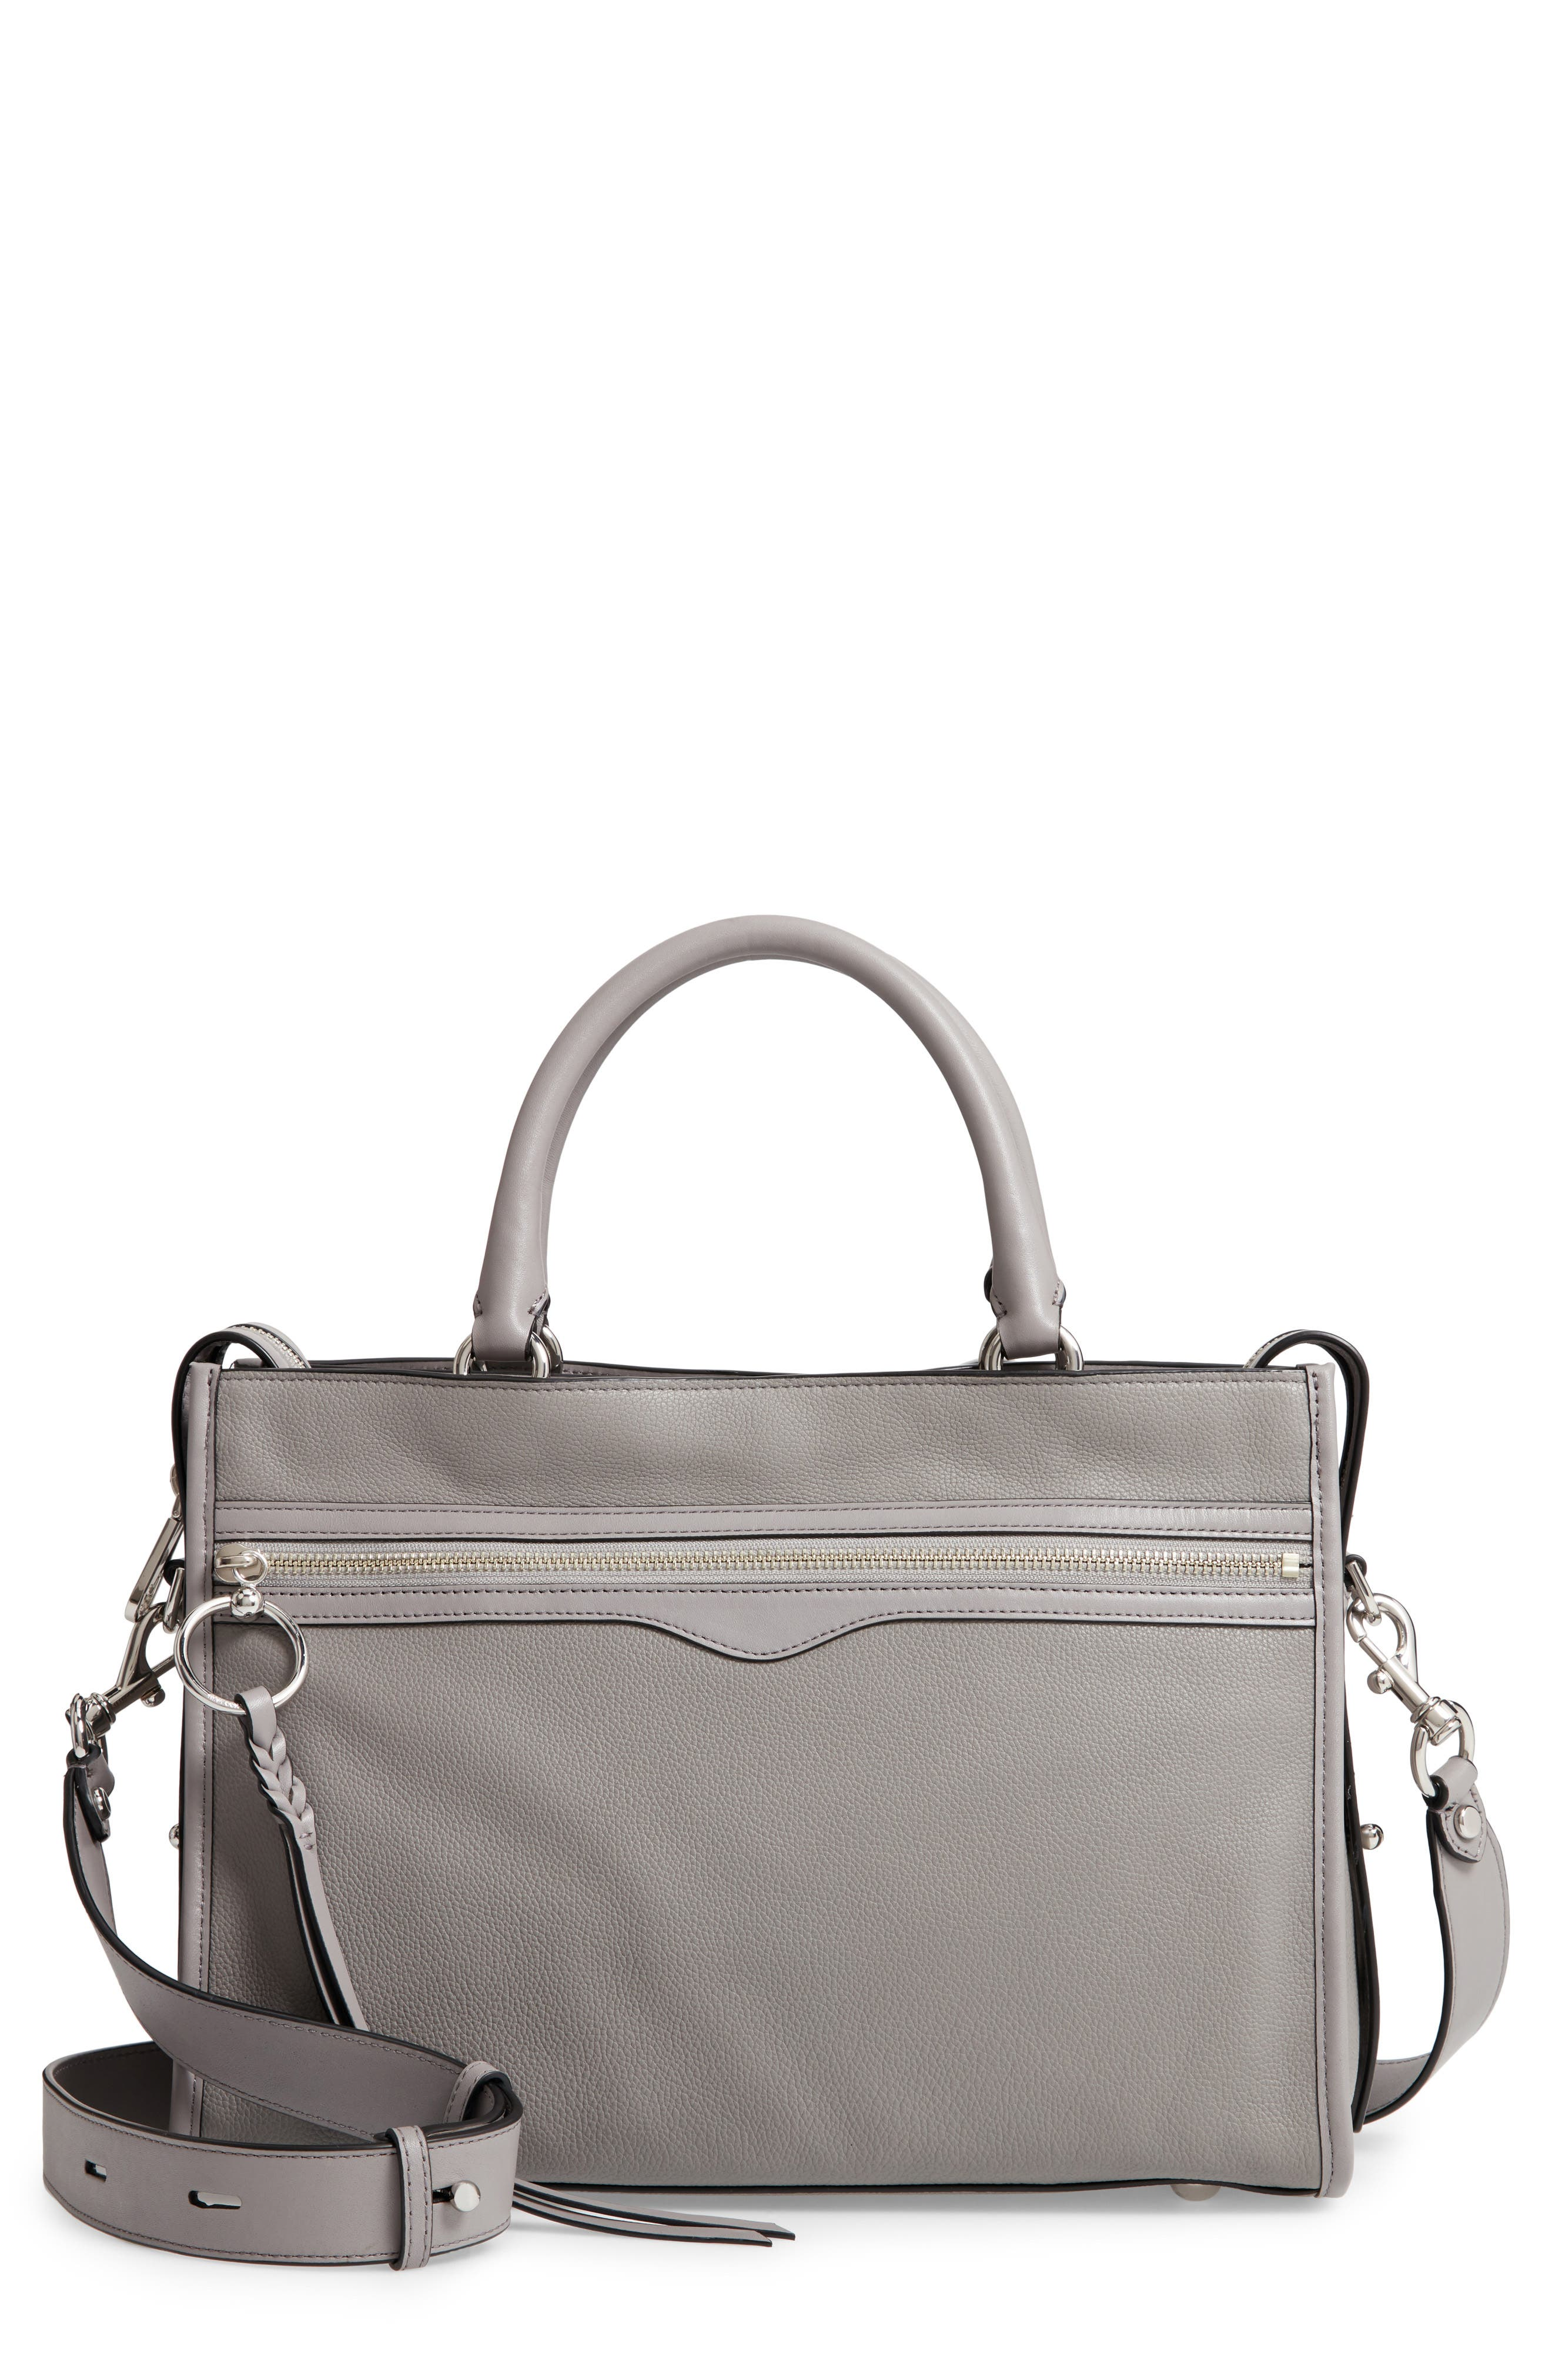 REBECCA MINKOFF,                             Bedford Zip Leather Satchel,                             Main thumbnail 1, color,                             GREY